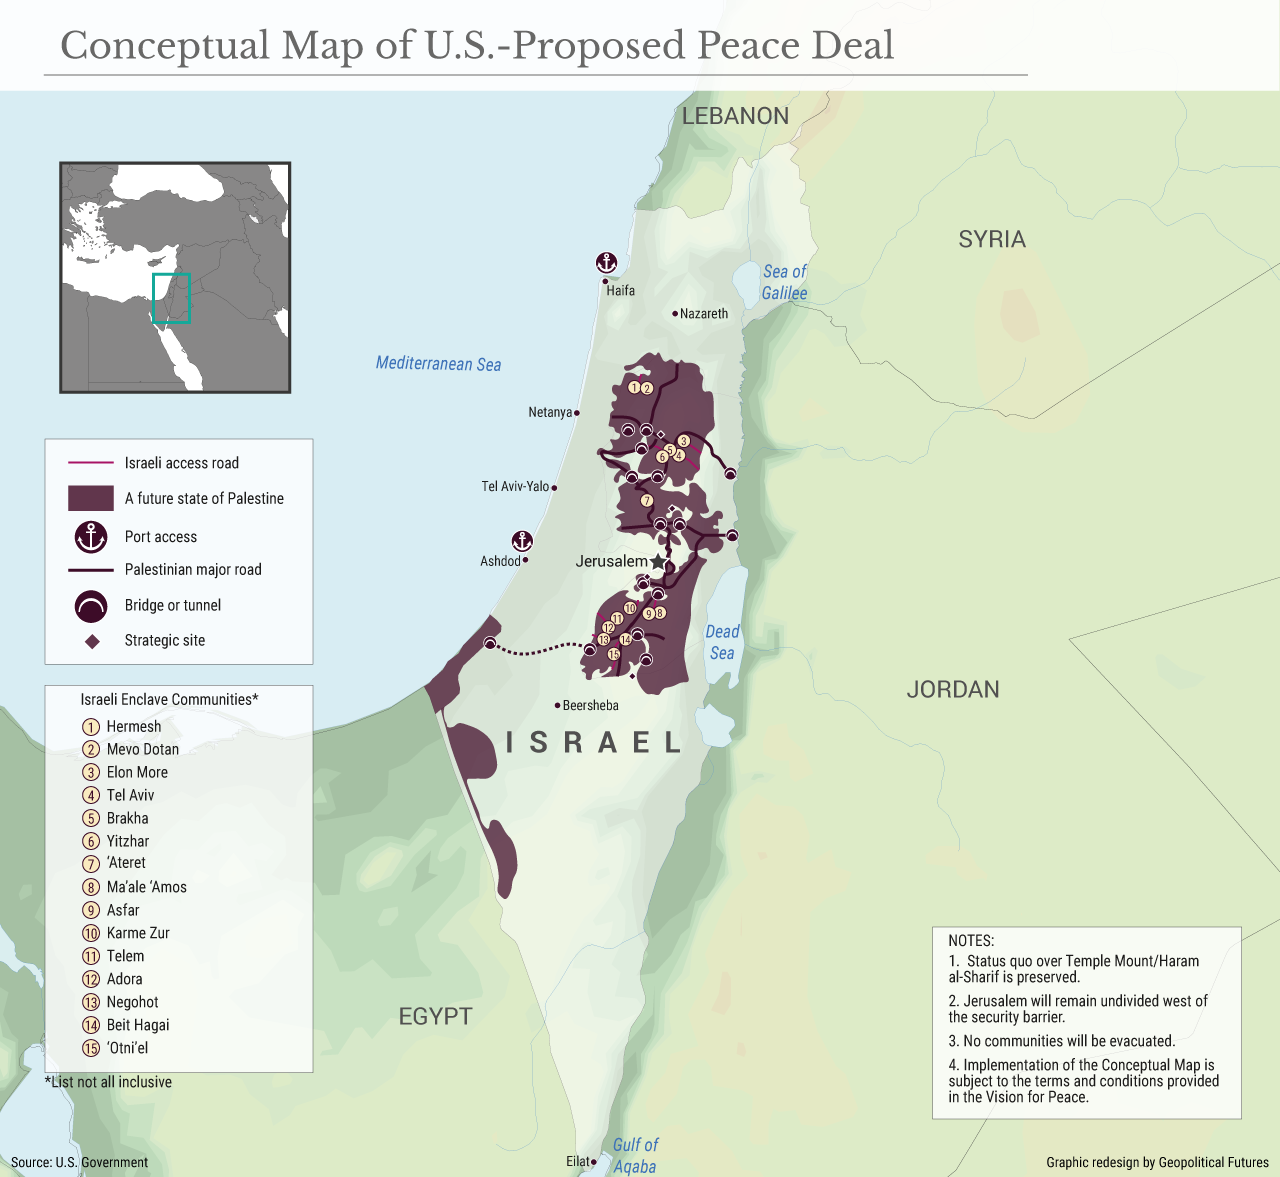 Conceptual Map of U.S.-Proposed Peace Deal